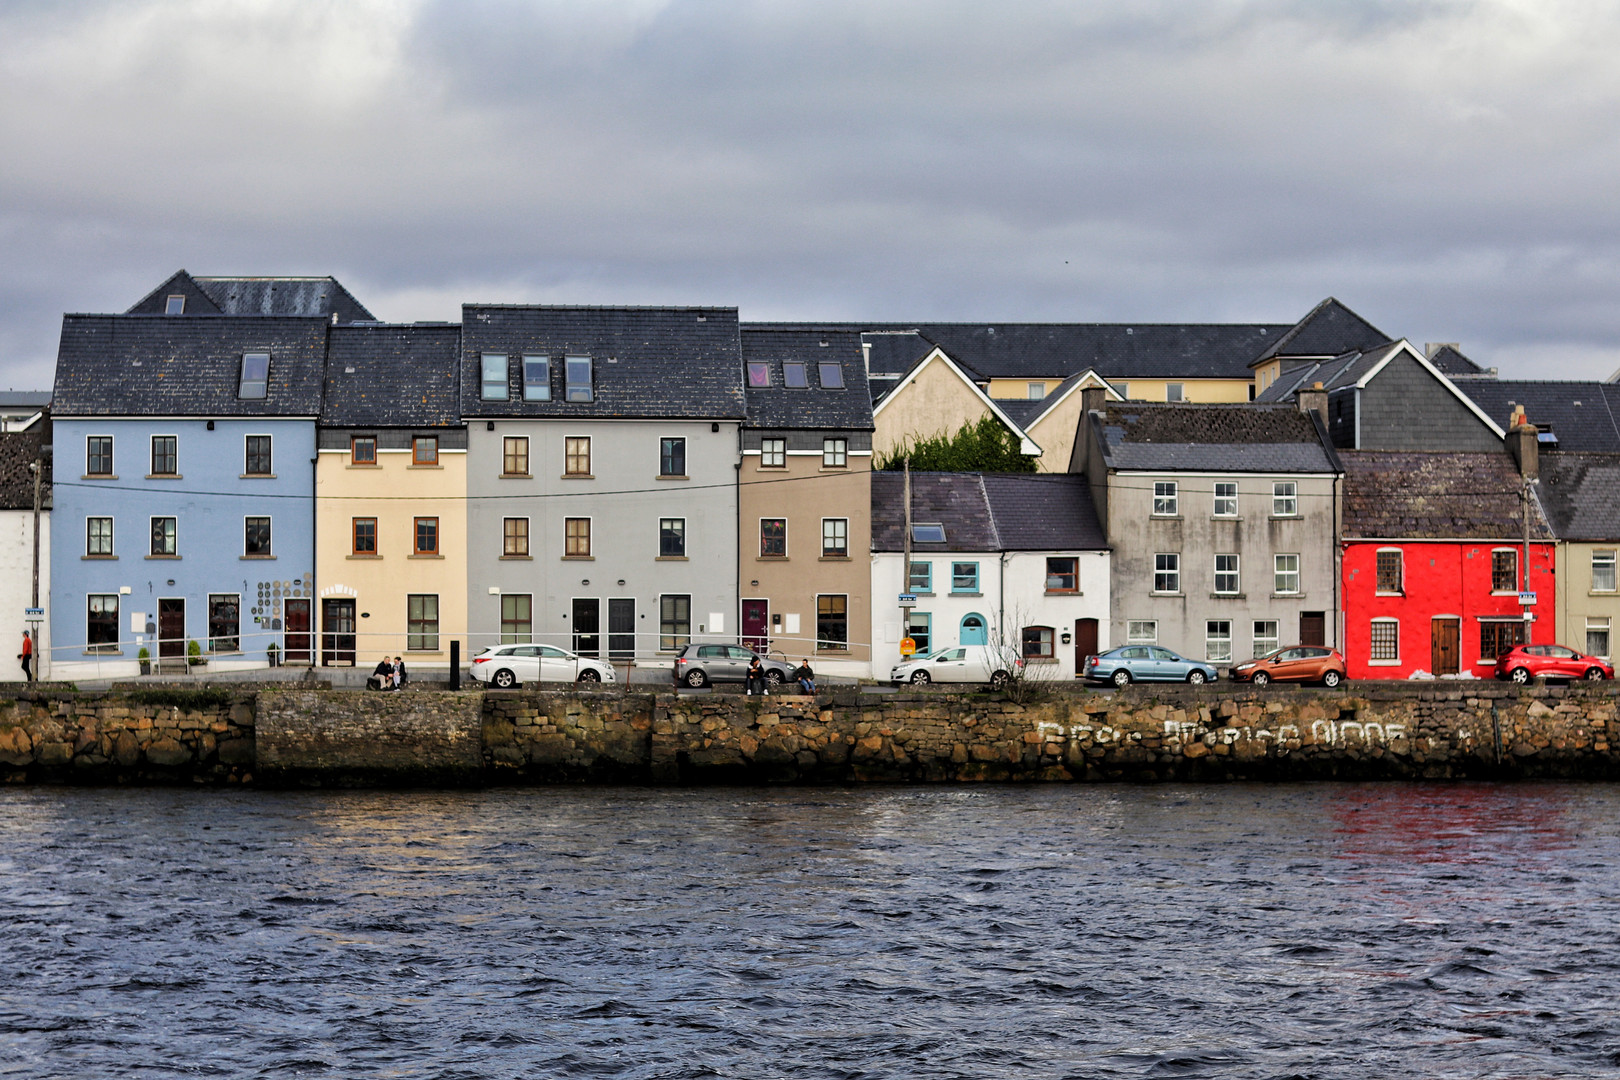 Book a Galway City or Food Tour